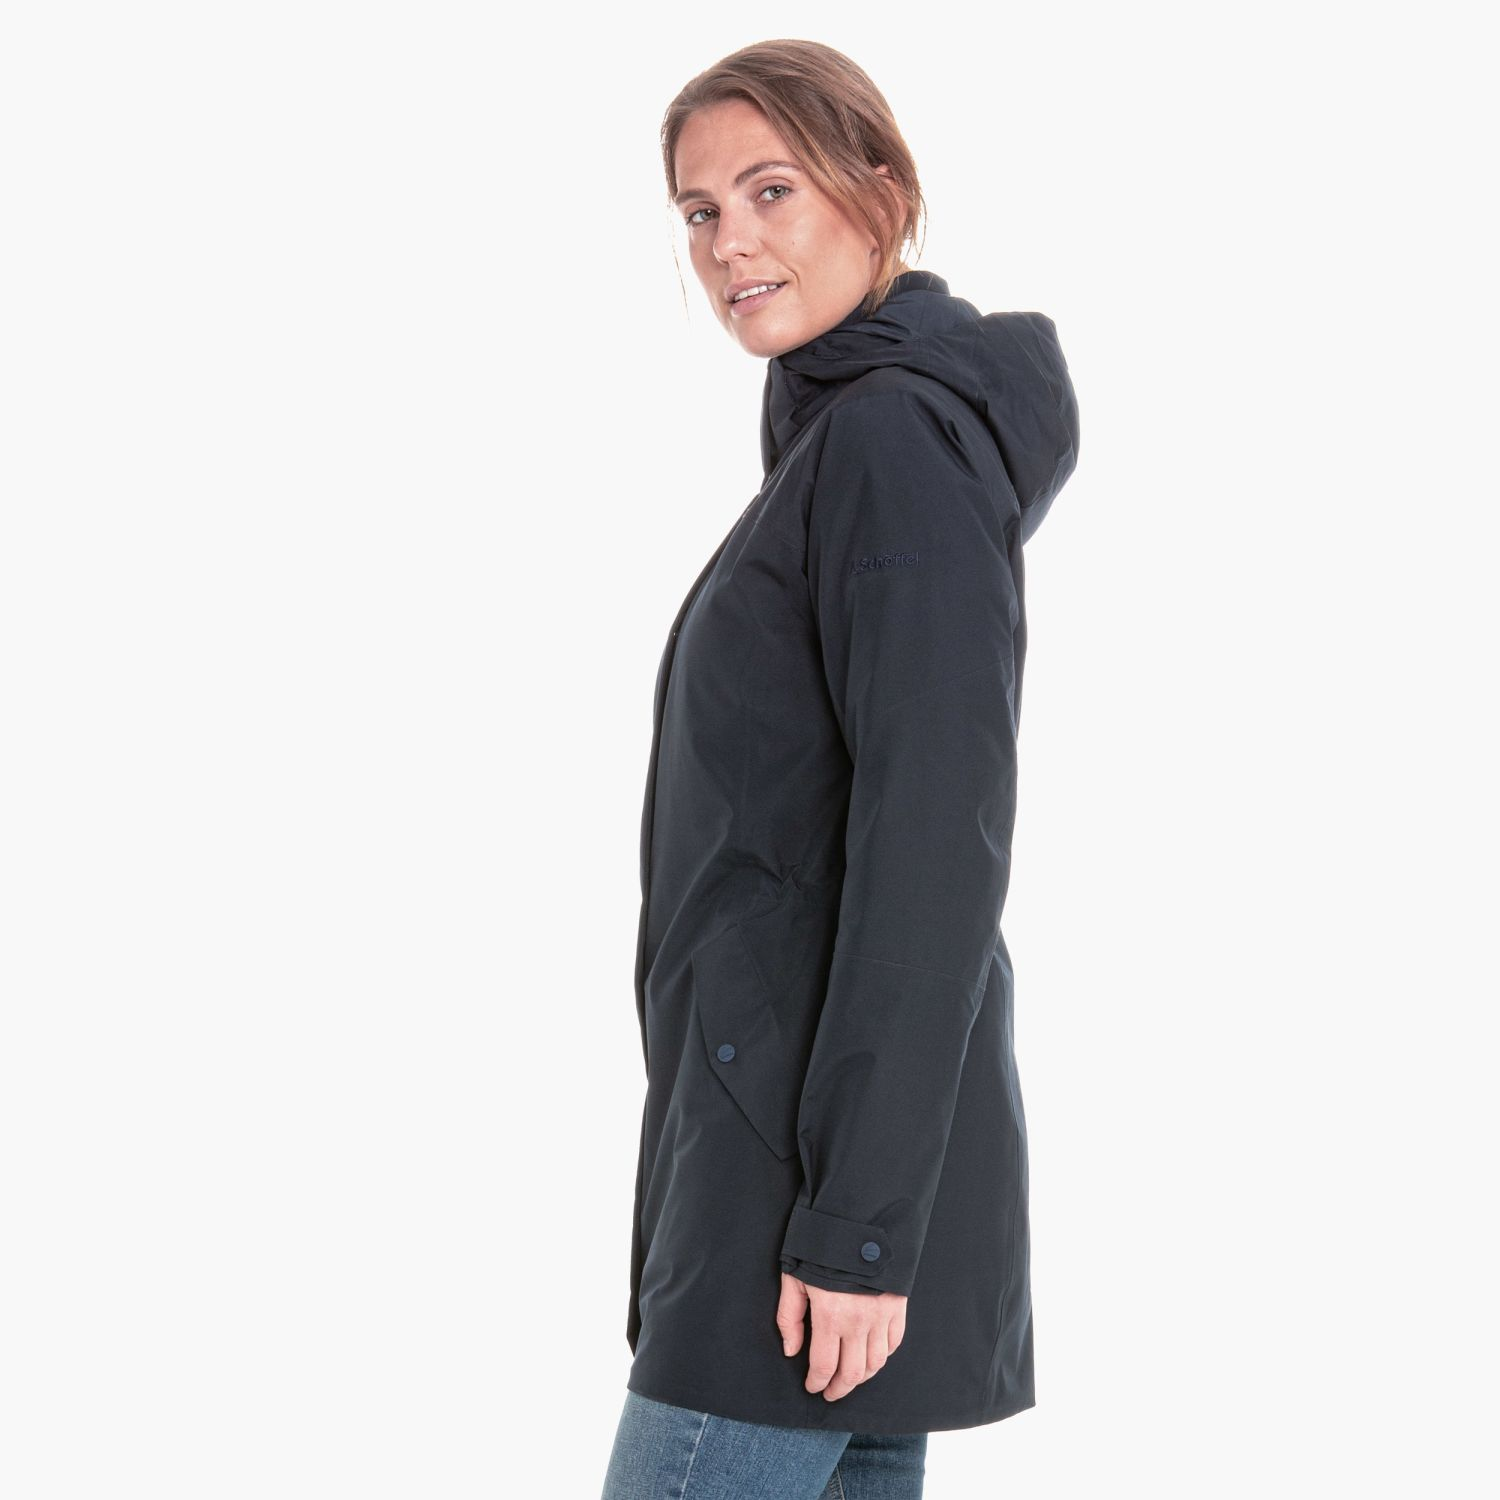 3in1 Jacket La Parva1